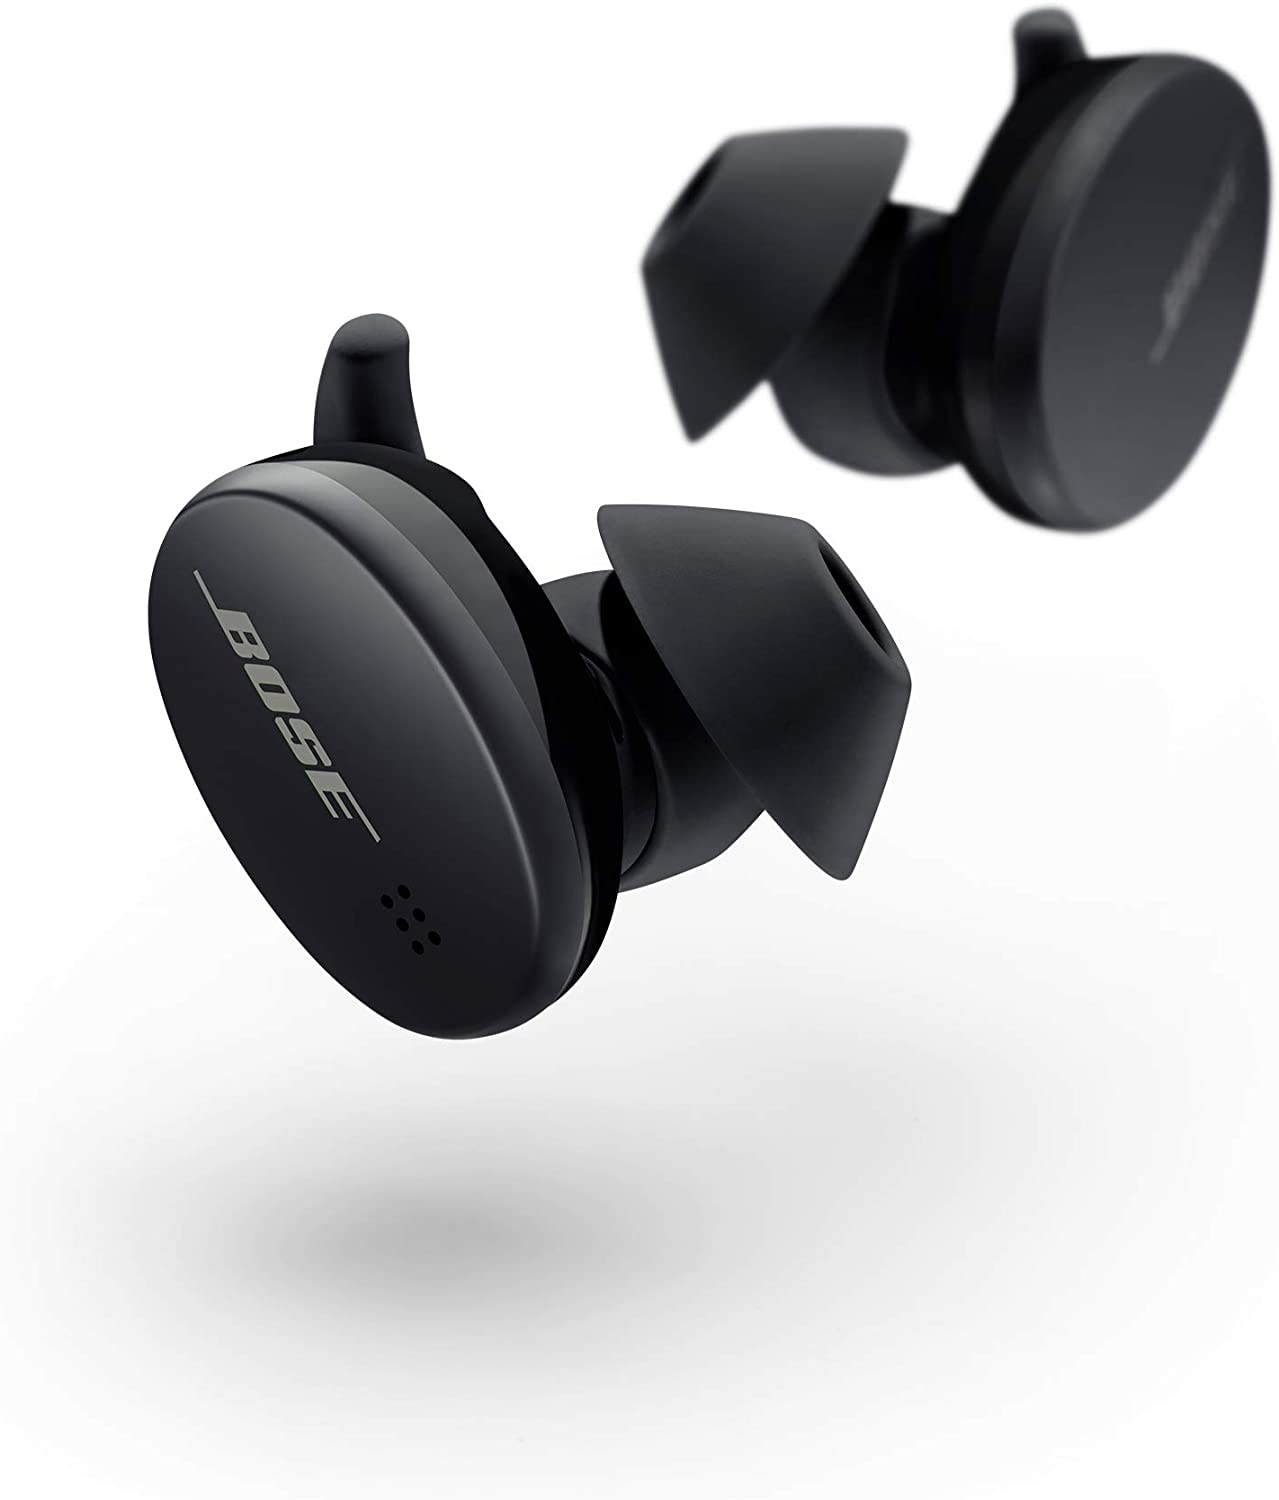 Boss earphones are the best headphones for the small ear this is wireless headphones.